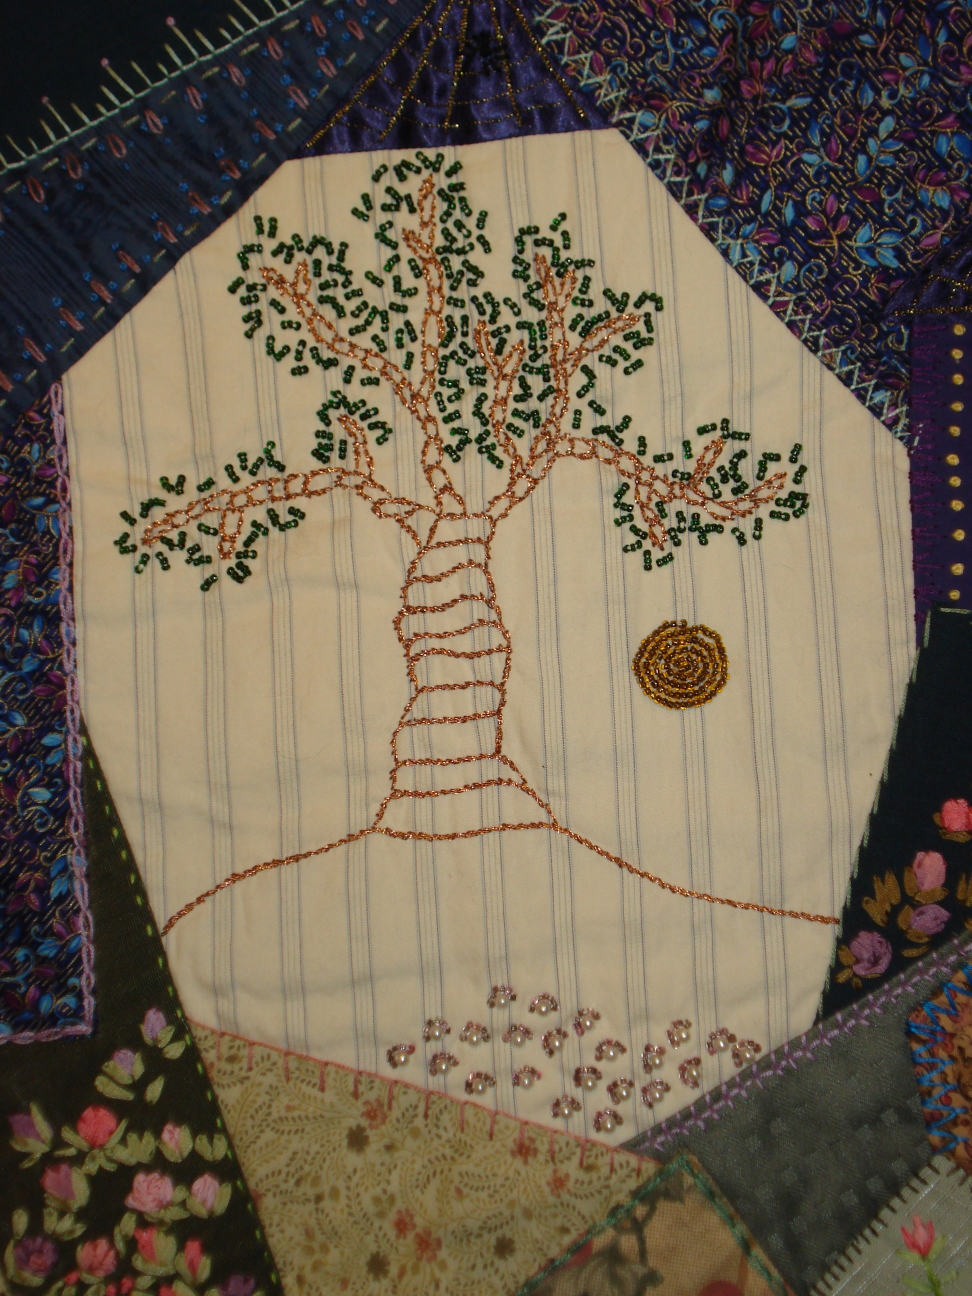 Crazy quilt wall hanging with embroidered and beaded tree, by Mary Warner.